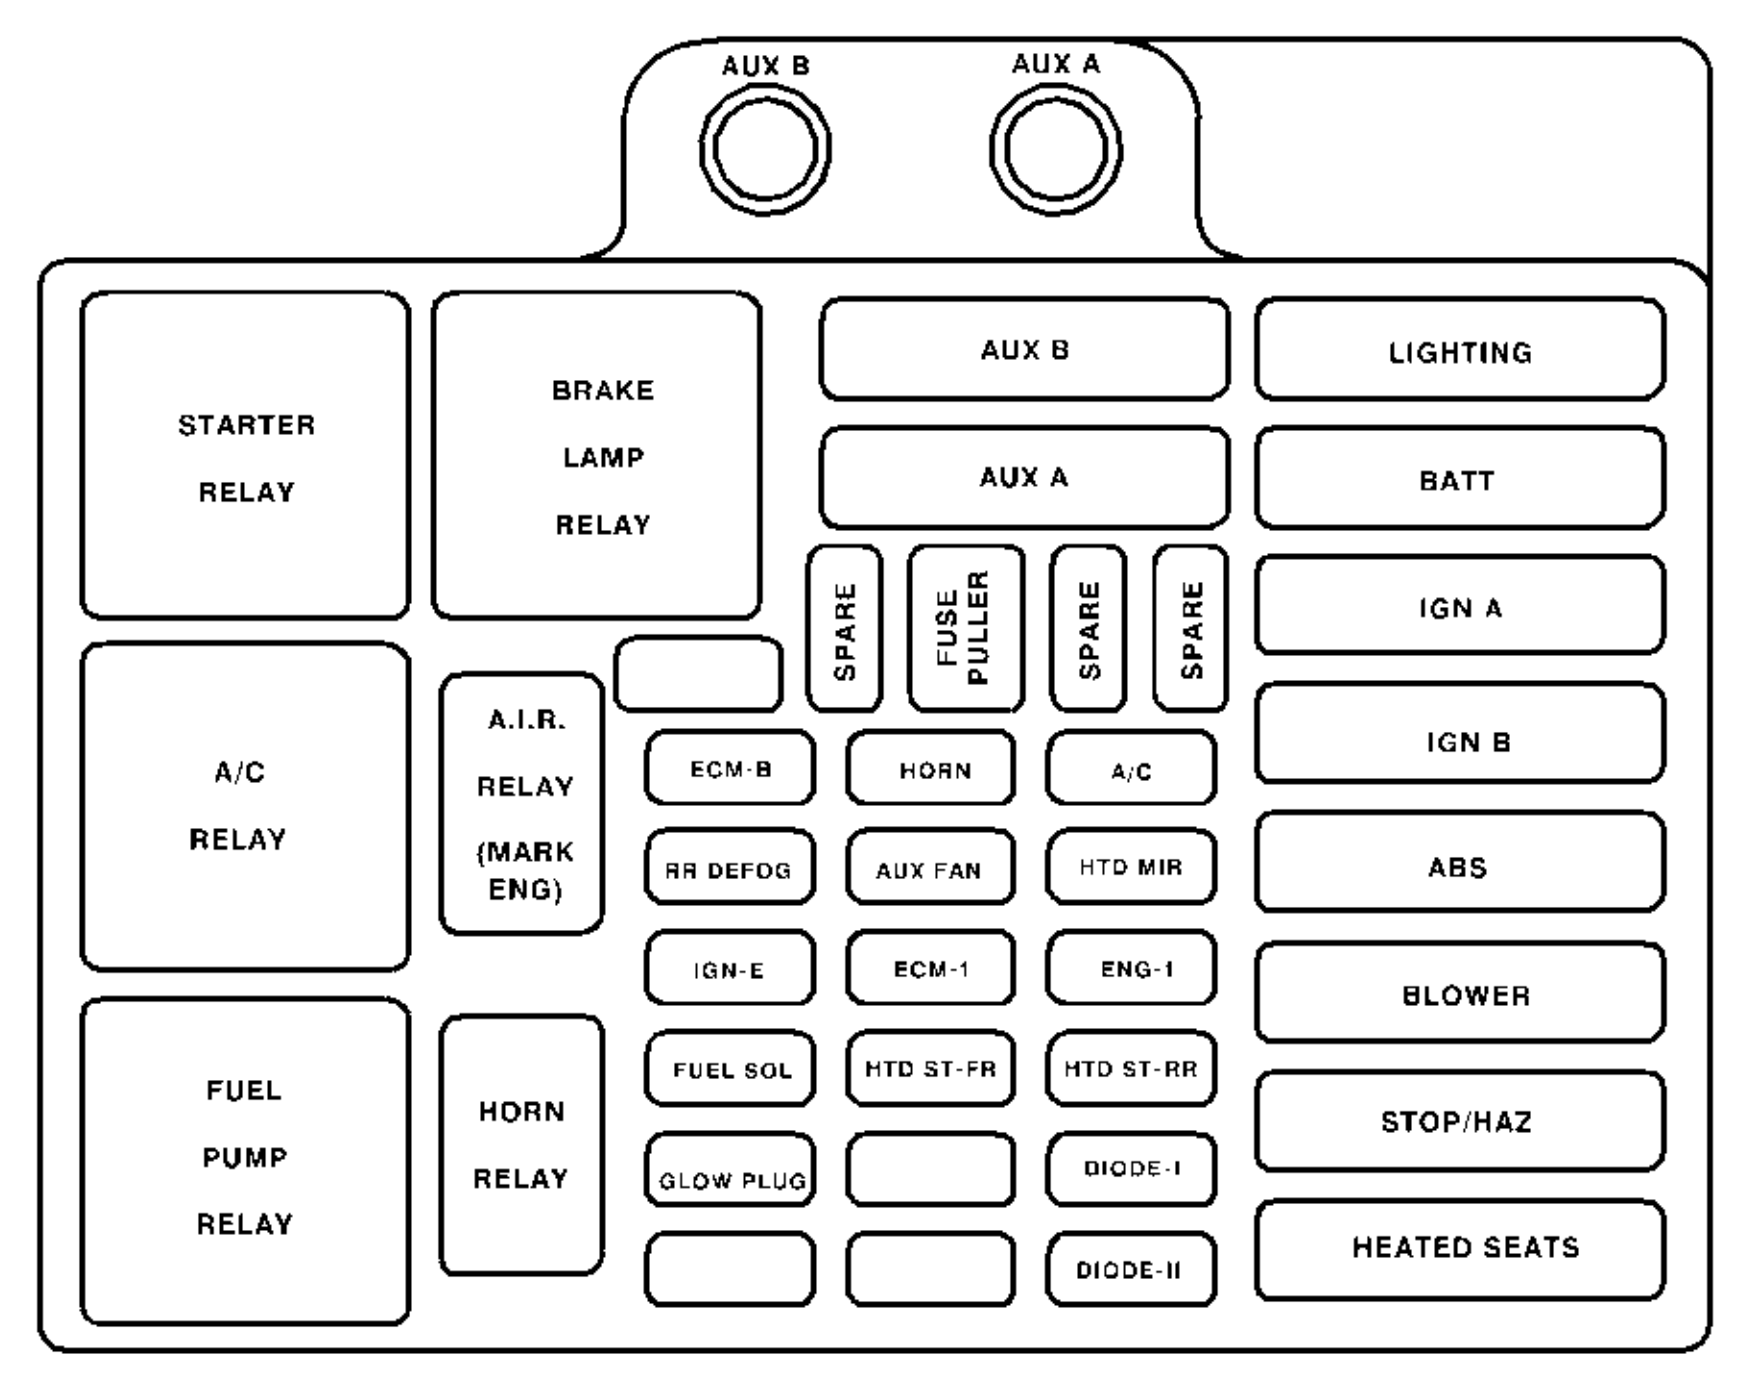 under hood fuse box diagram chevrolet suburban  1999      fuse box diagram carknowledge info under hood fuse box diagram chevrolet suburban  1999      fuse box